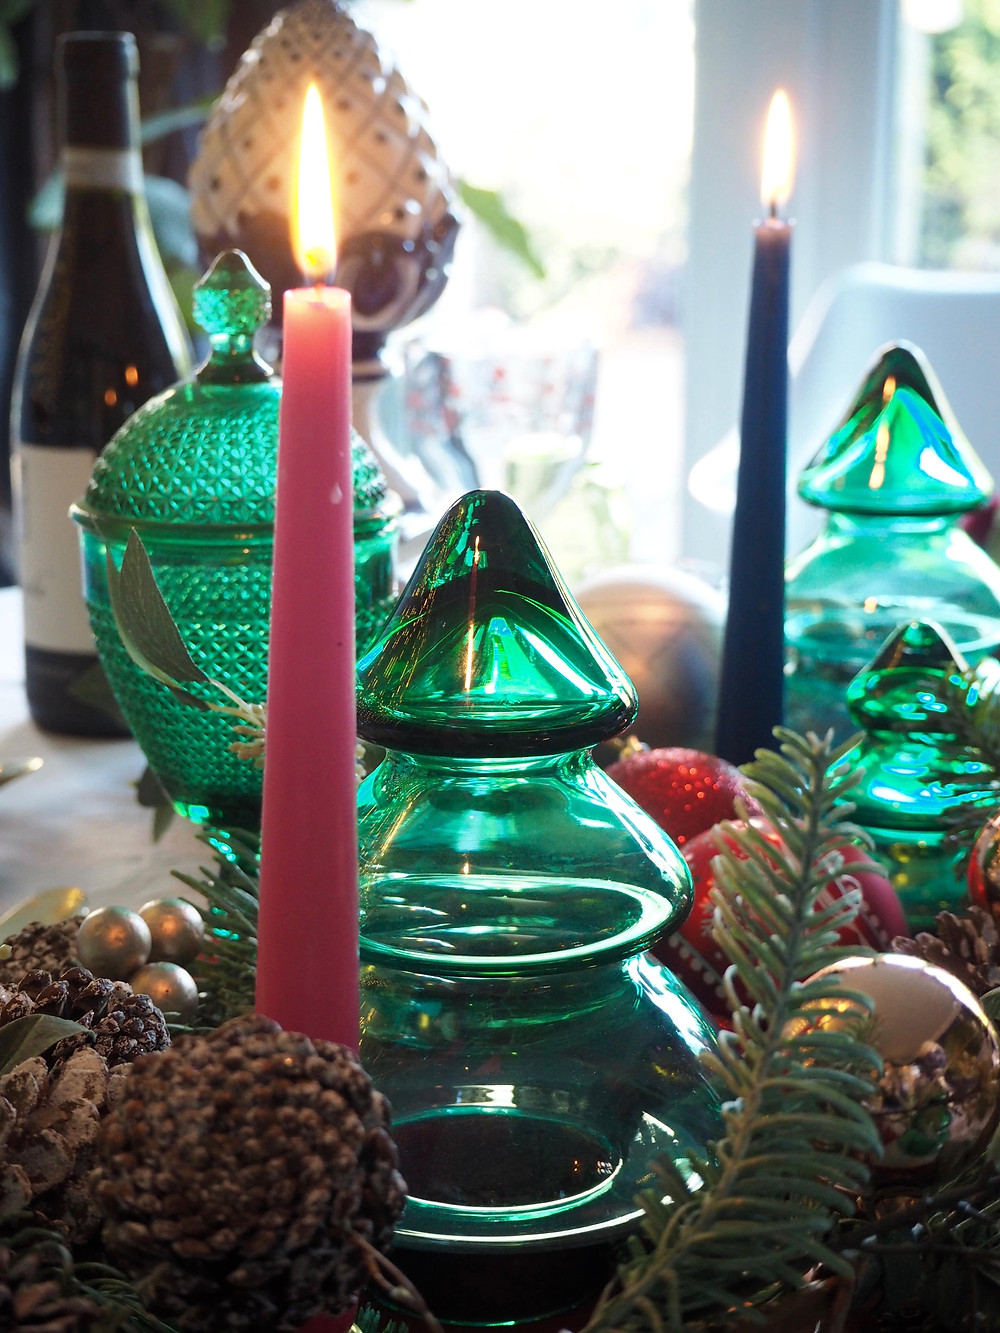 glass tree ornaments in green with candles on a festive Christmas table, centrepiece